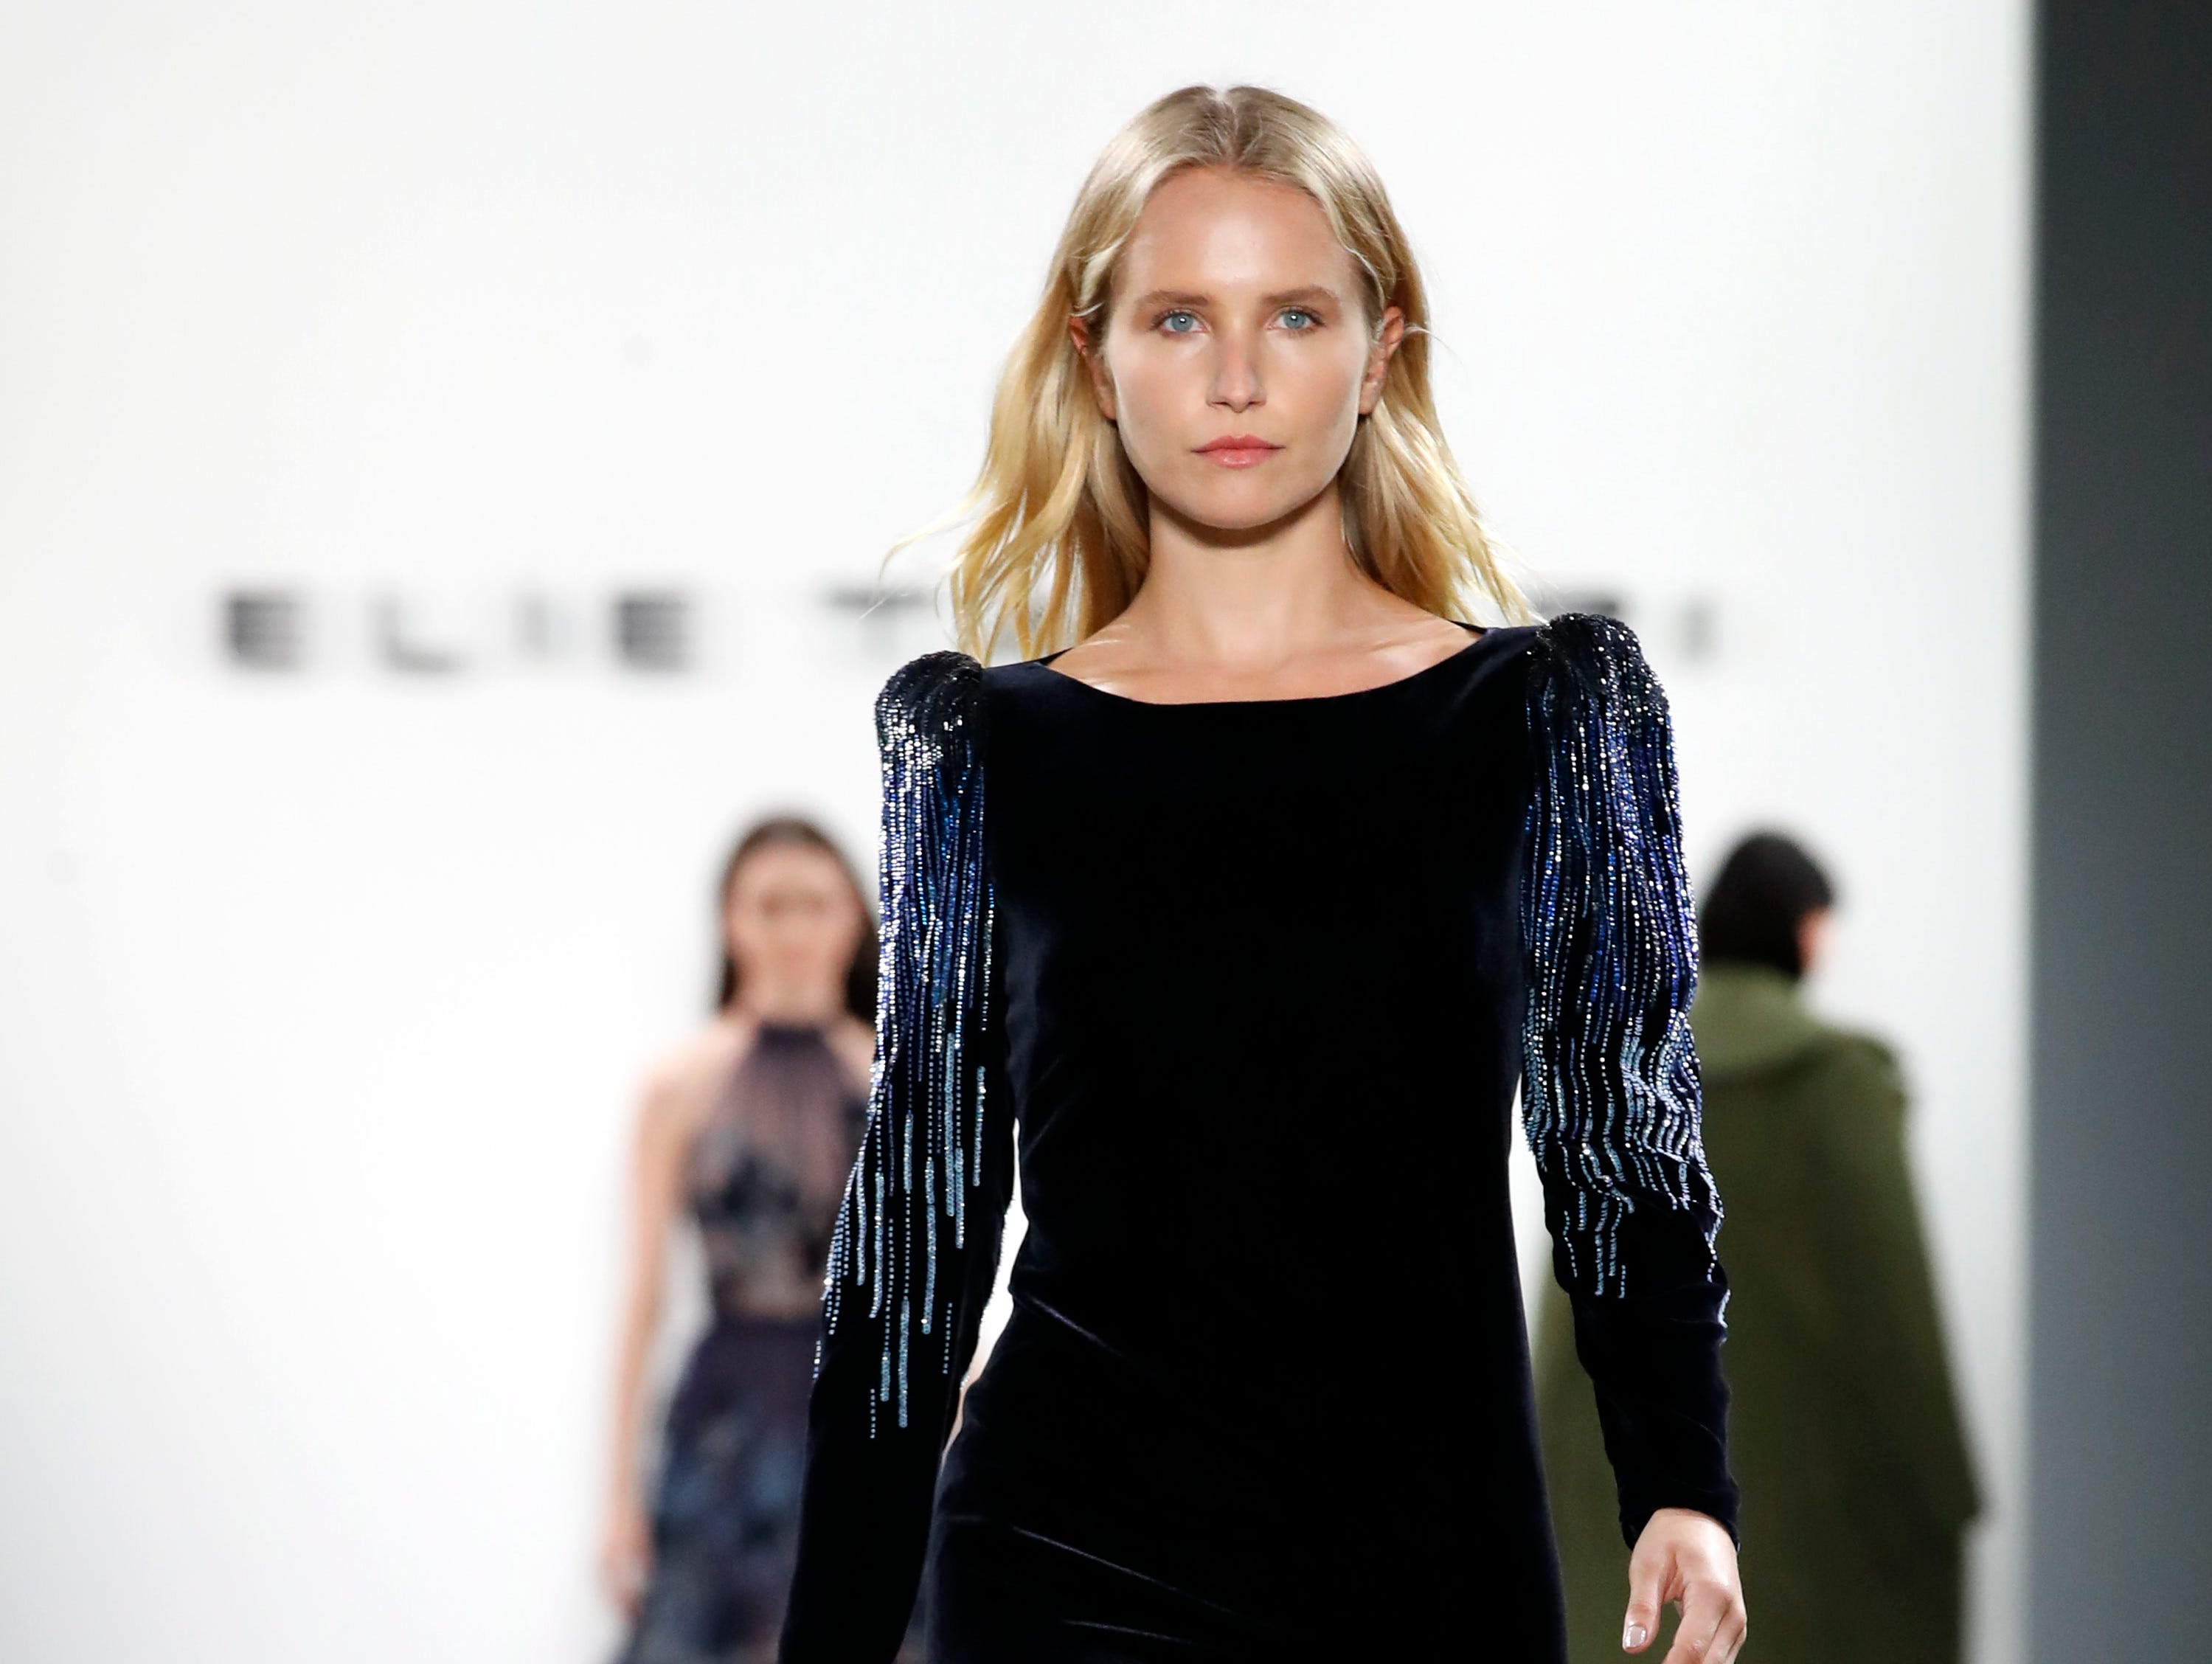 epa07351384 Model Sailor Lee Brinkley-Cook, daughter of former model Christie Brinkley, presents a creation by Elie Tahari during the New York Fashion Week, in New York, New York, 07 February 2019. The Fall-Winter 2019/20 collections are presented from 06 to 13 February.  EPA-EFE/JASON SZENES ORG XMIT: JSX04